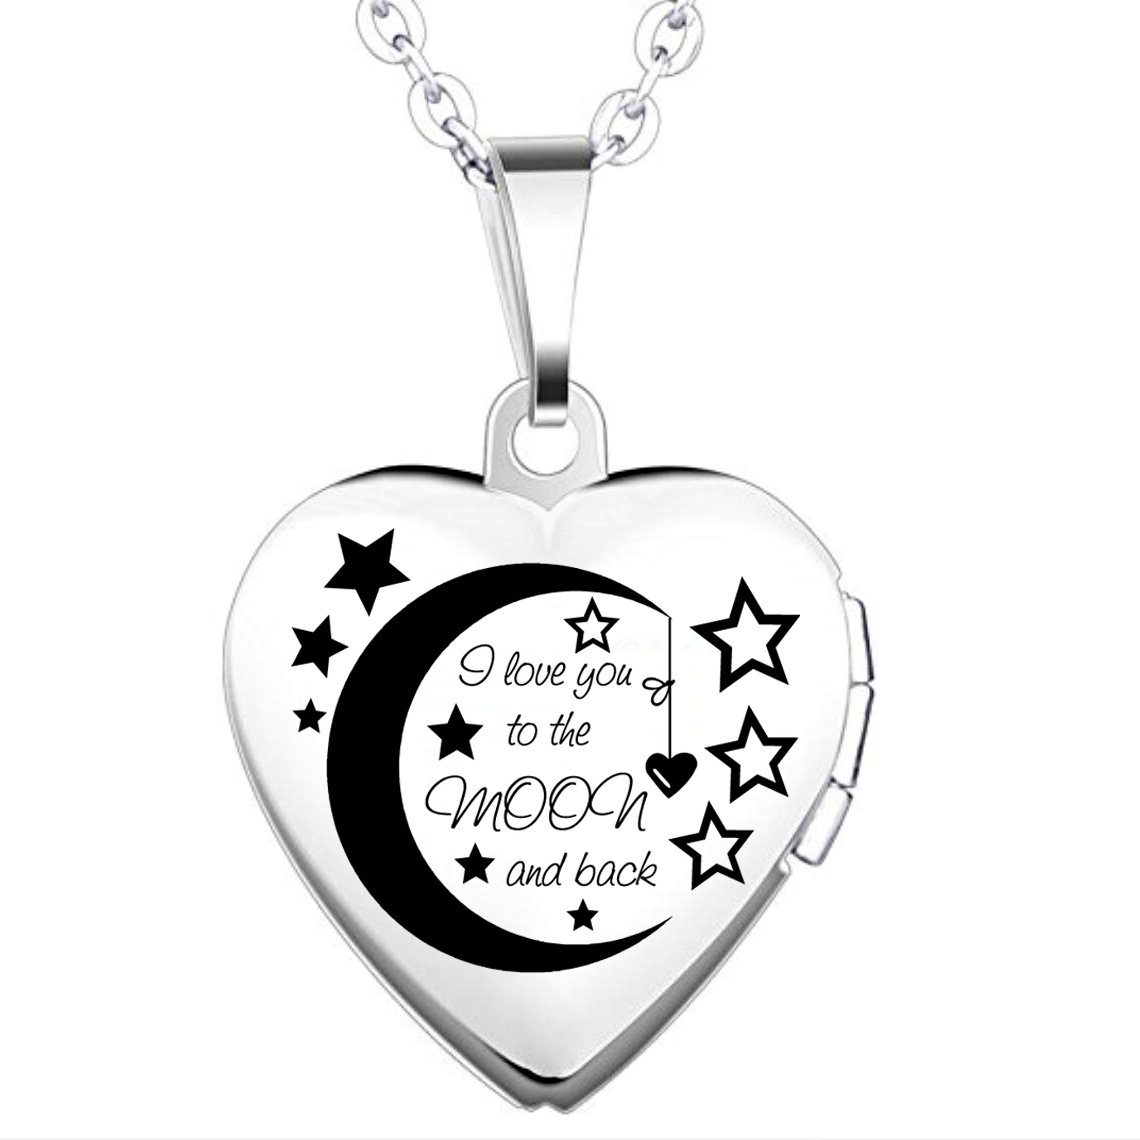 IXIQI Locket I Love You to the Moon and Back Titanium Heart Infinity Love Locket Necklace B07BNM177Y_US